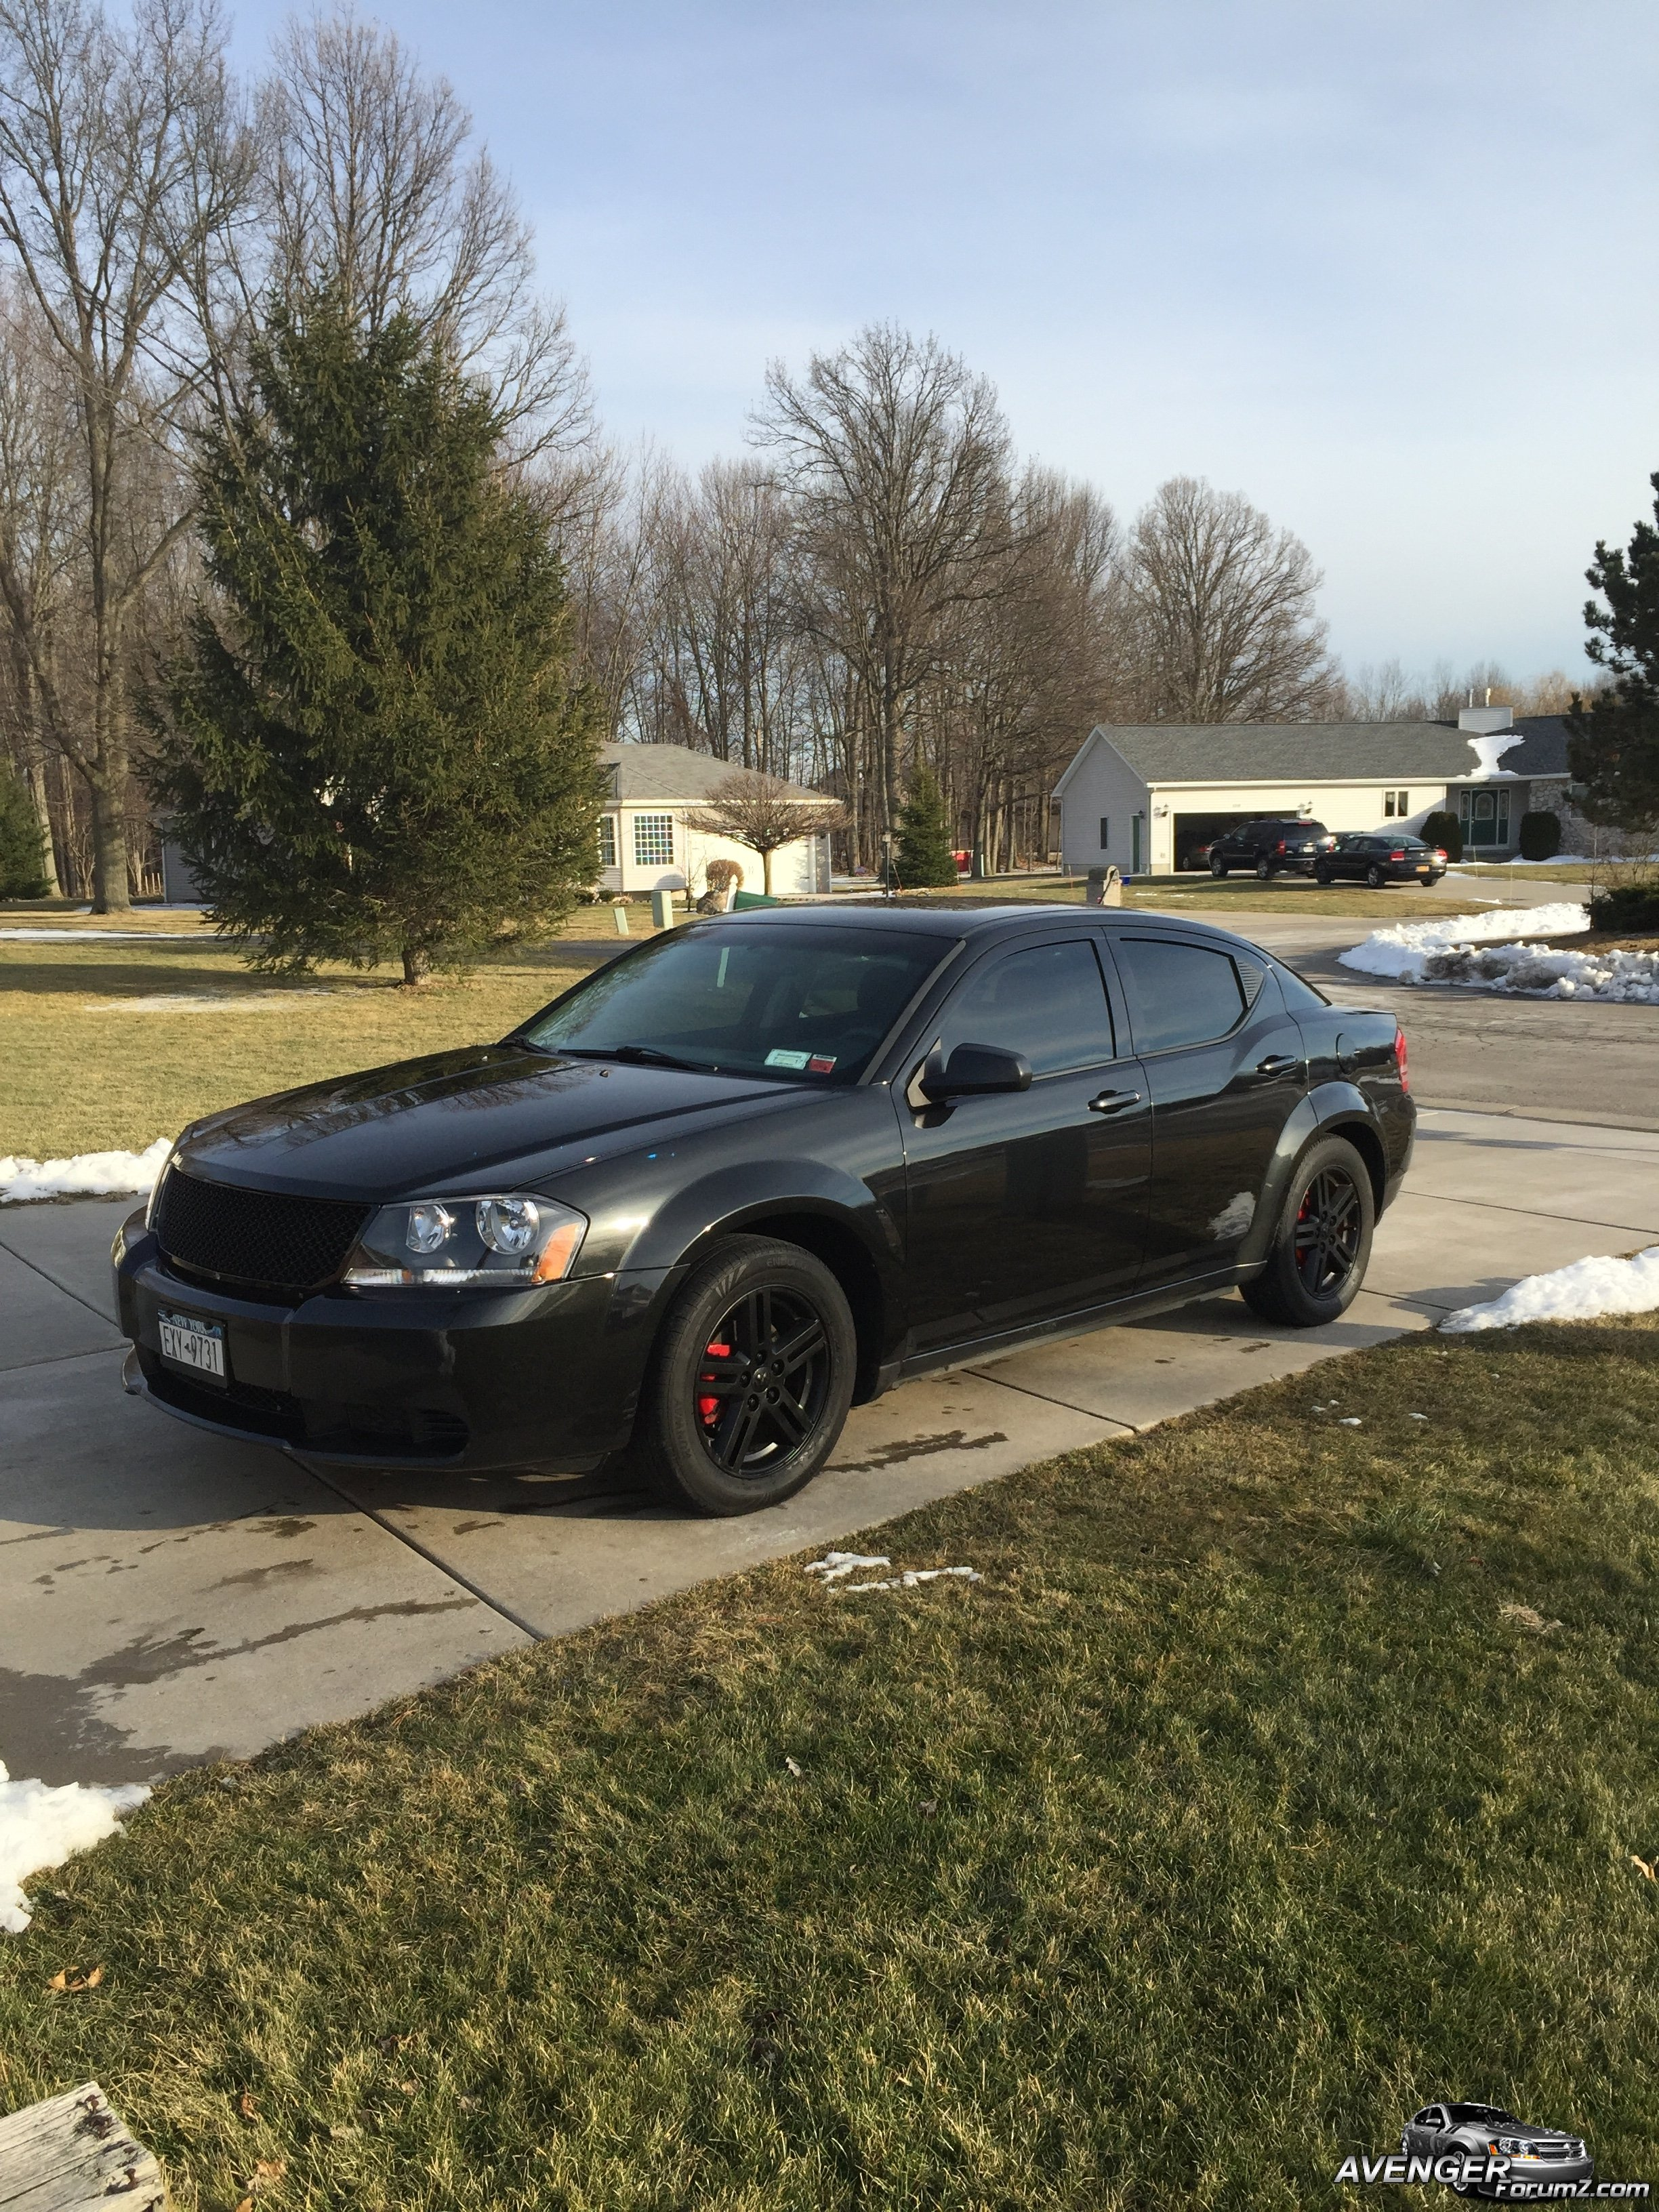 Dodge Avenger 2016 >> 2008 Dodge Avenger Sxt Blacked Out Dodge Avenger Forum